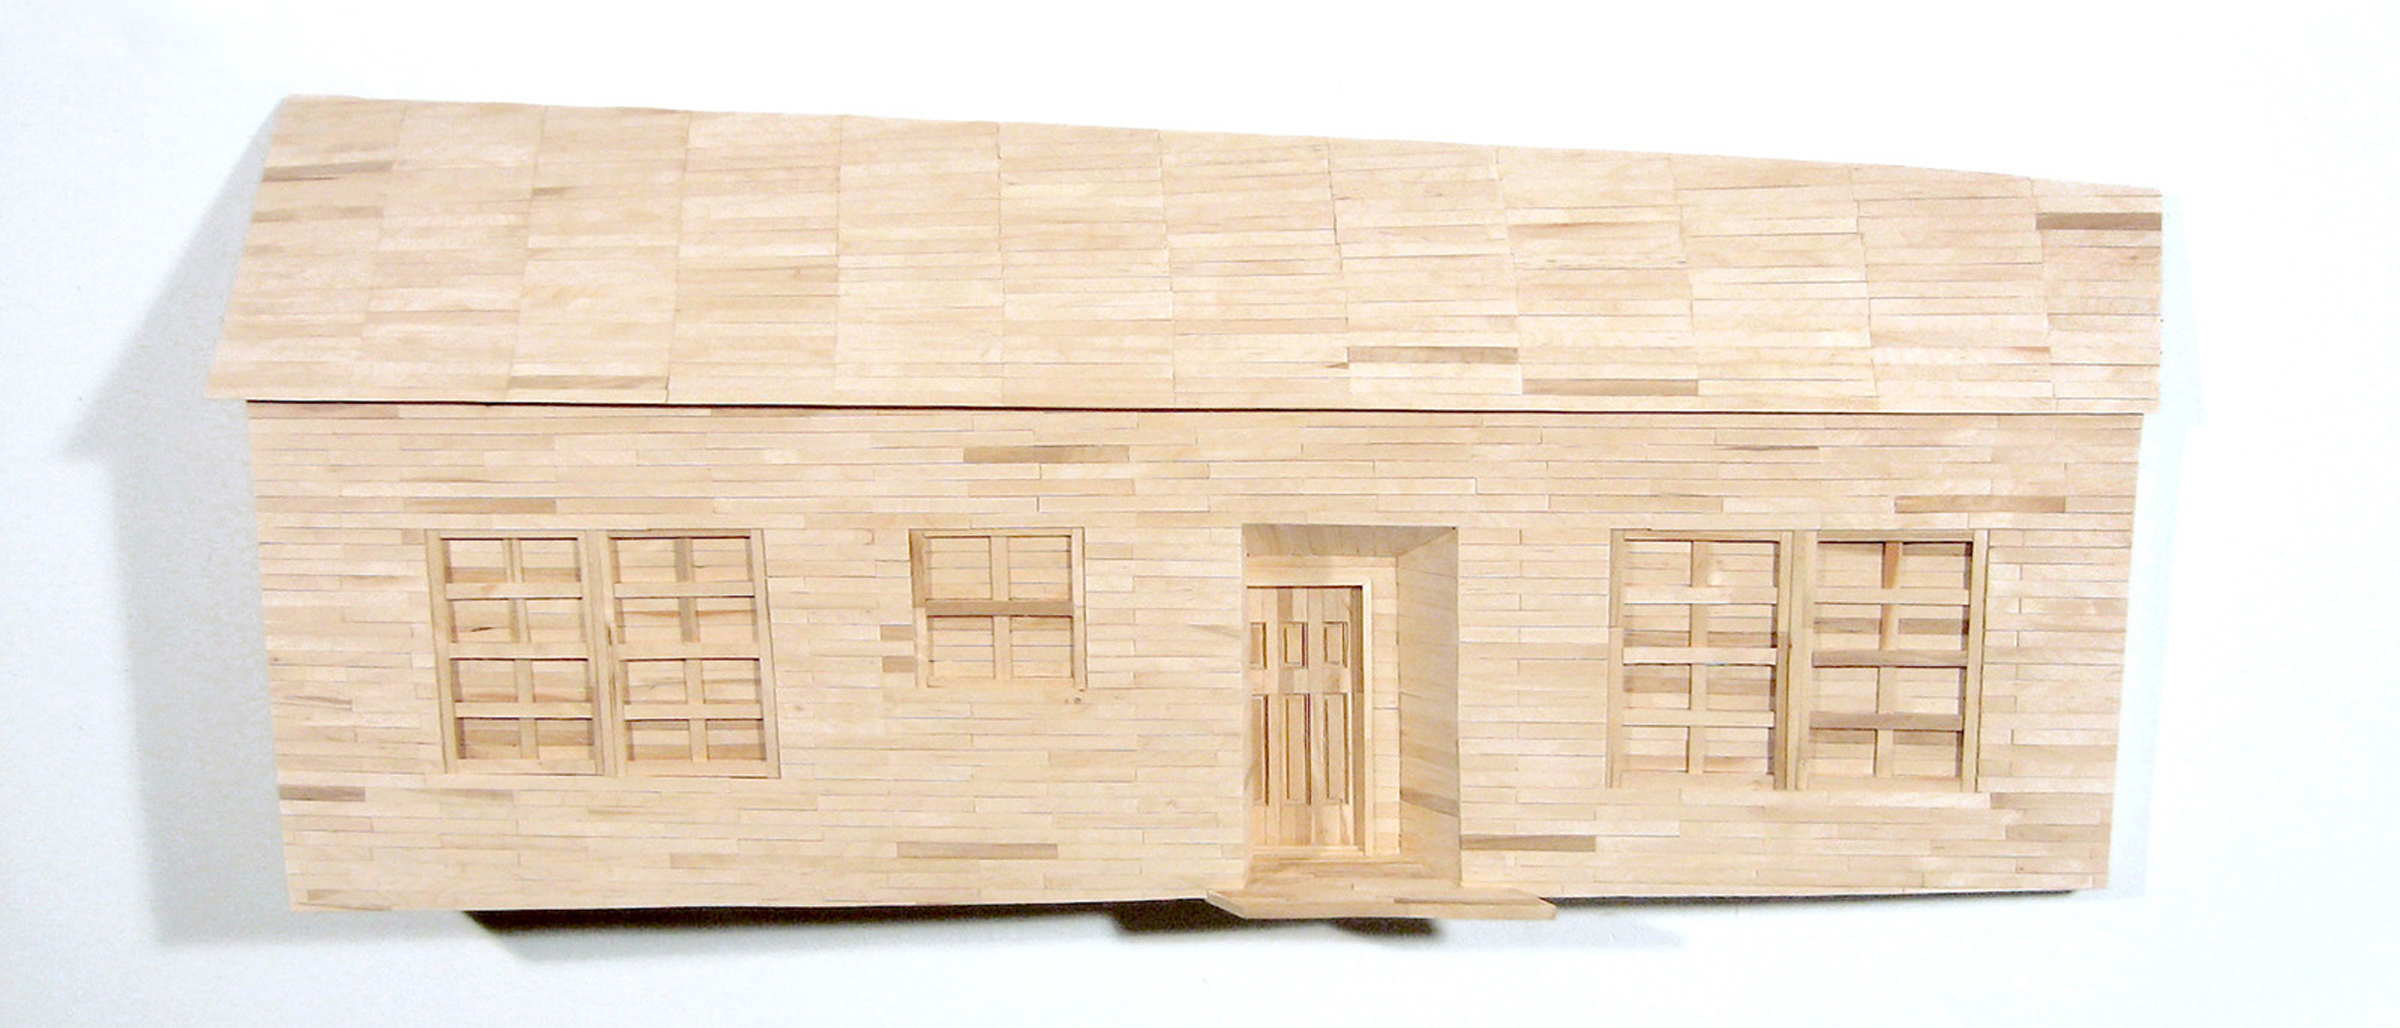 """$2100 - My House (my parents never let us have a dog because we didn't have a fence). Popsicle sticks. 48"""" x 21"""" x 8""""was $3700"""